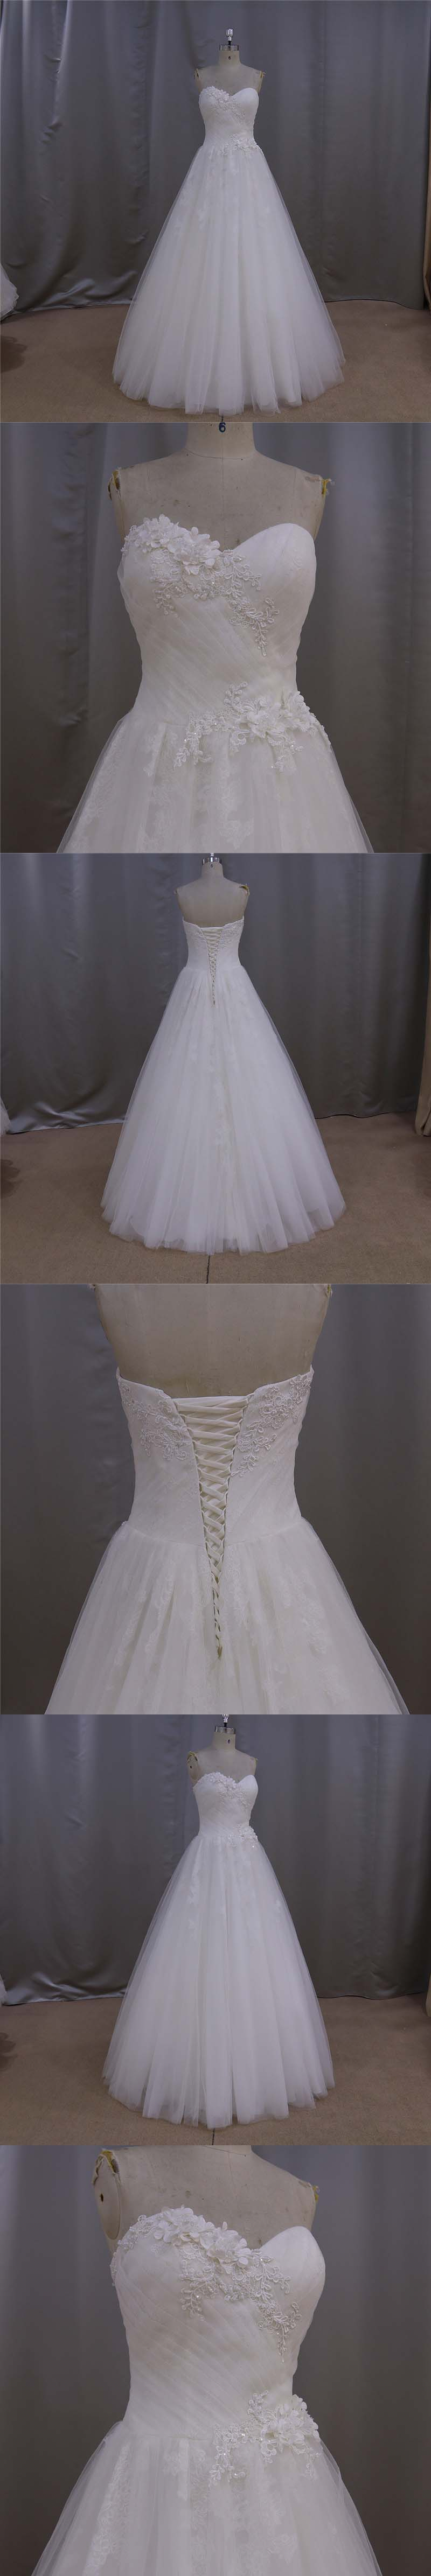 Simple Bridal Gown A Line